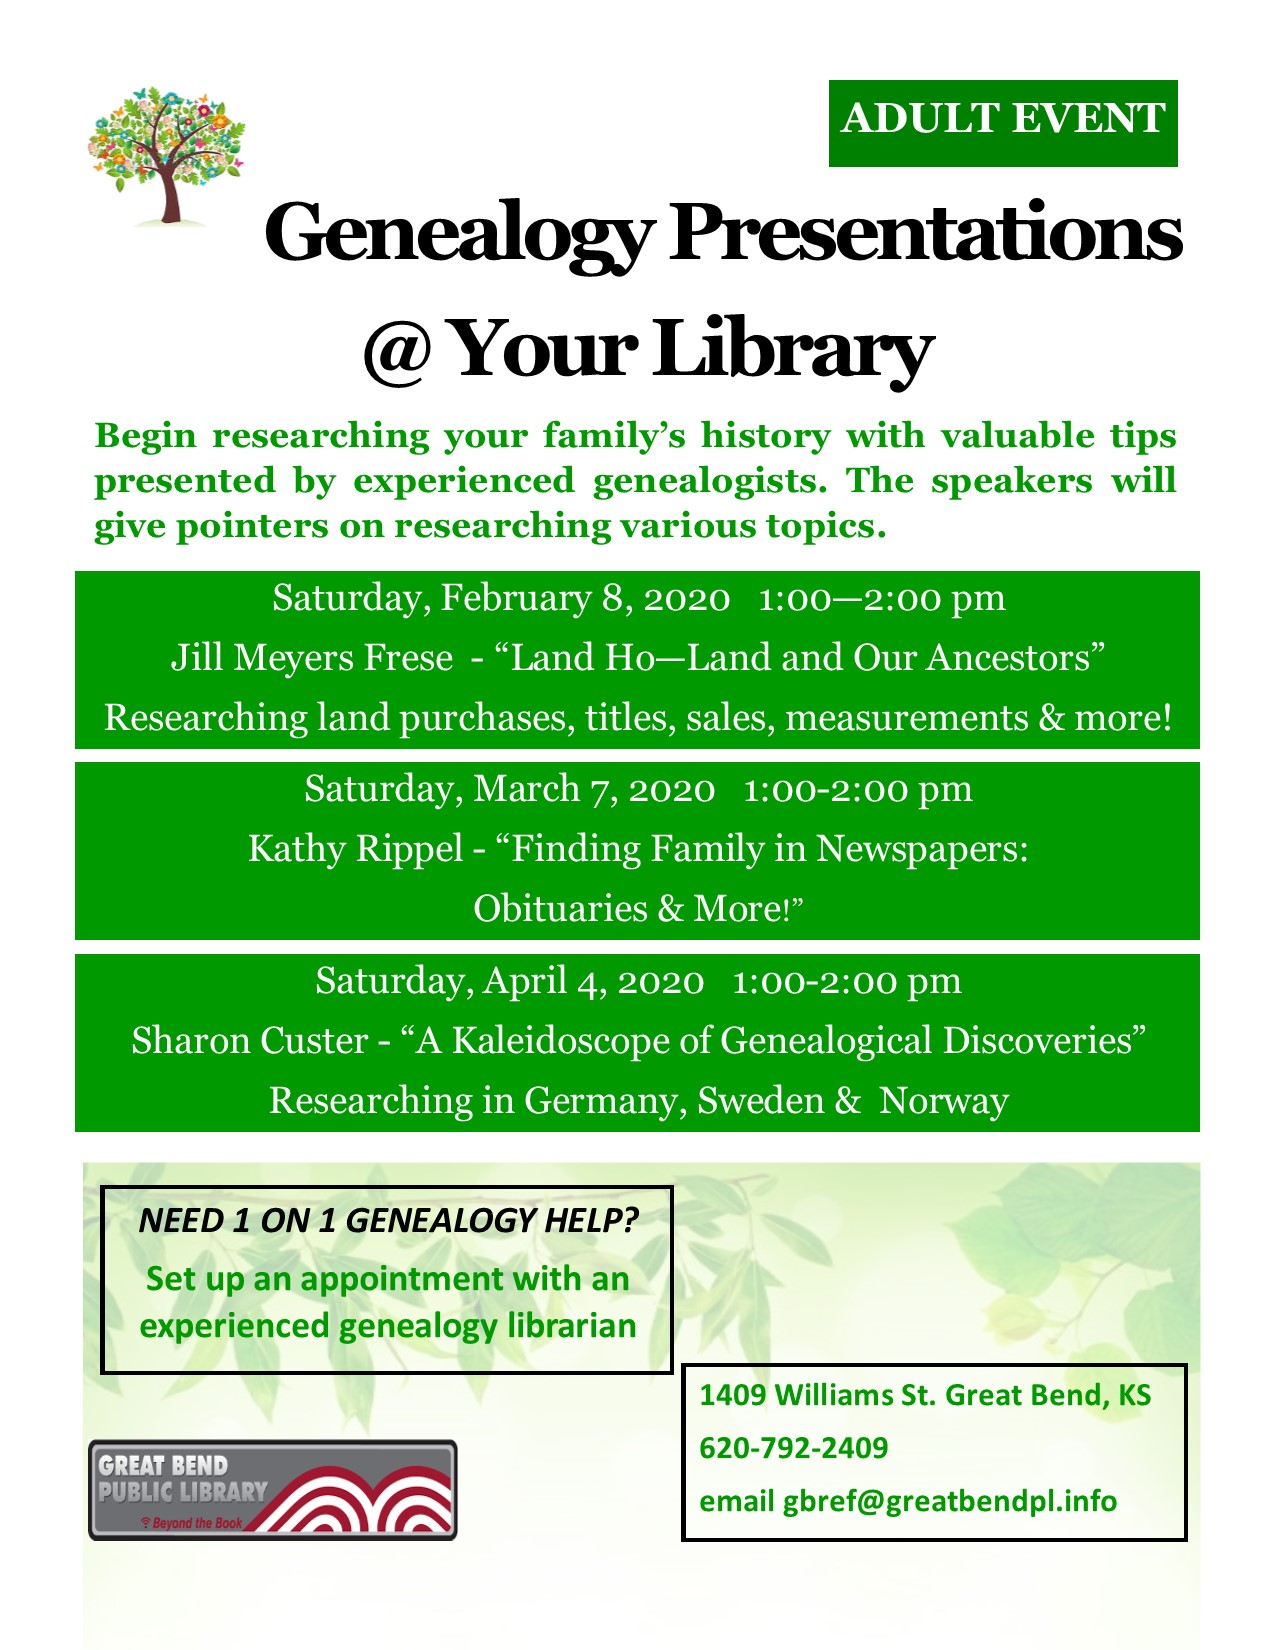 """Genealogy Presentation """"Land Ho! Questions about land purchases, sales, measurement, titles, etc., will be answered"""" by Jill Frese"""